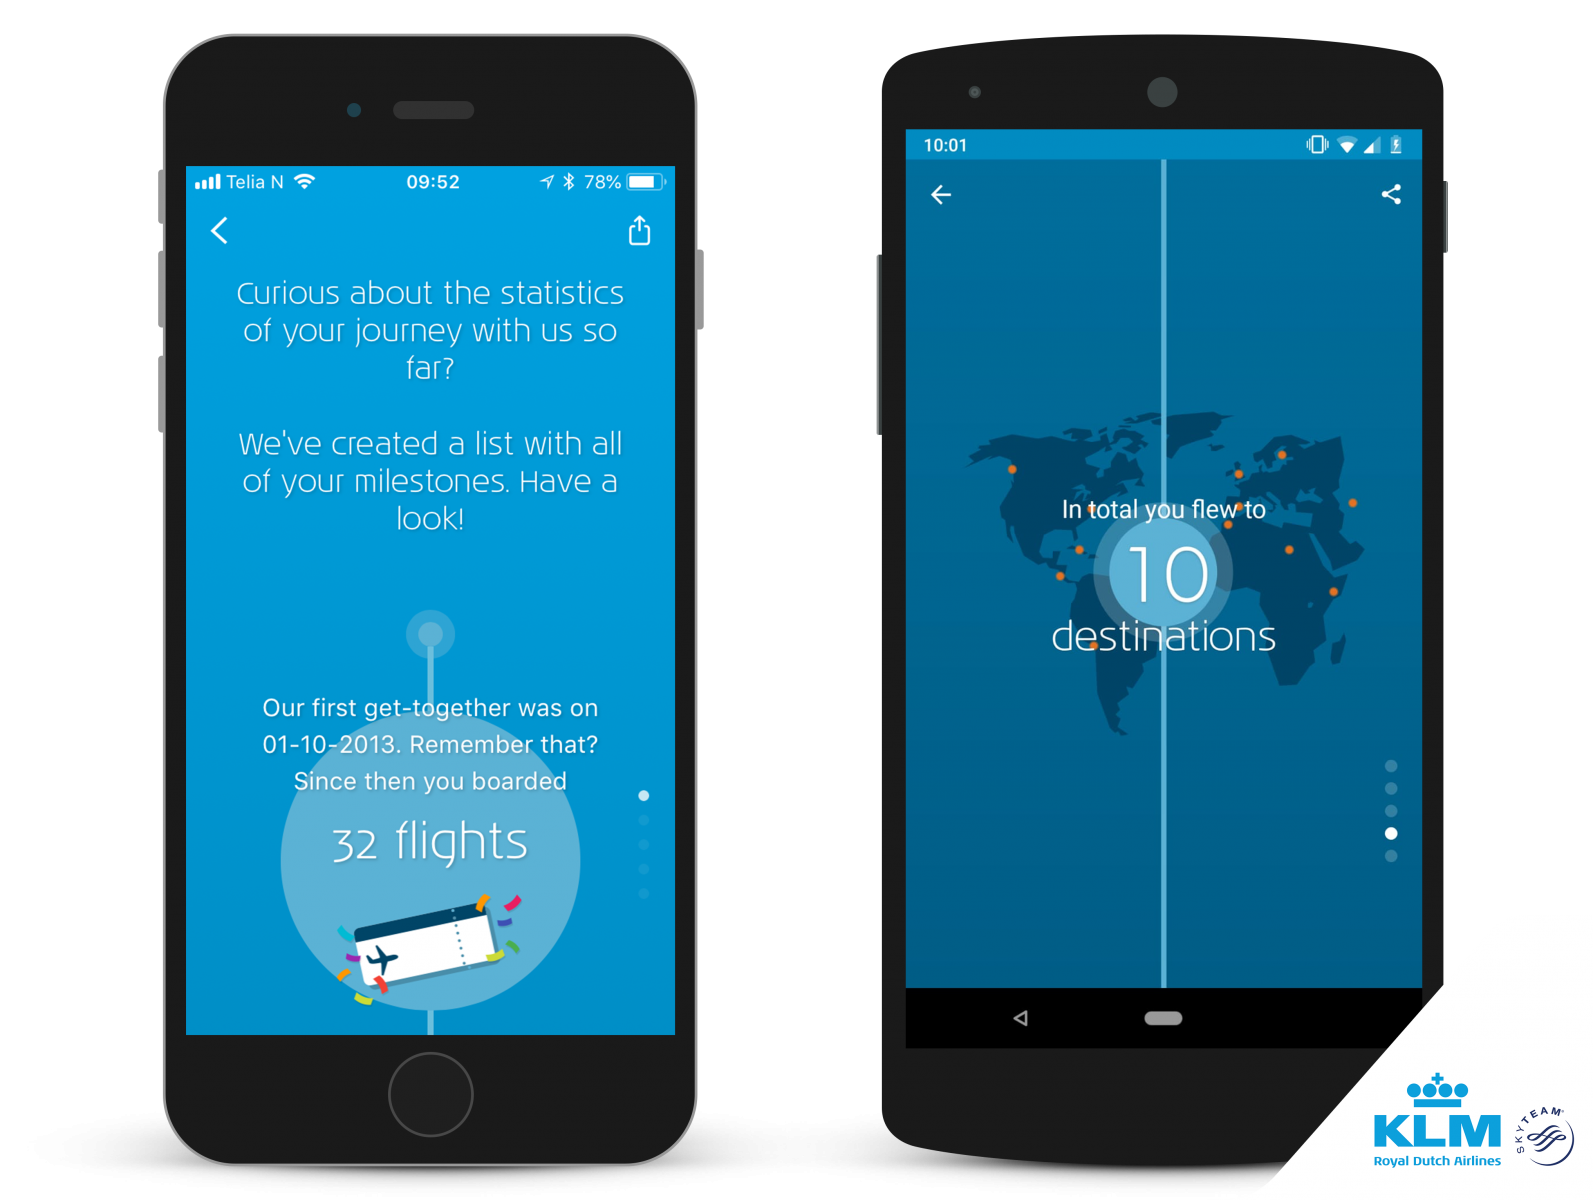 Αποτέλεσμα εικόνας για KLM adds new features to KLM app with Milestones